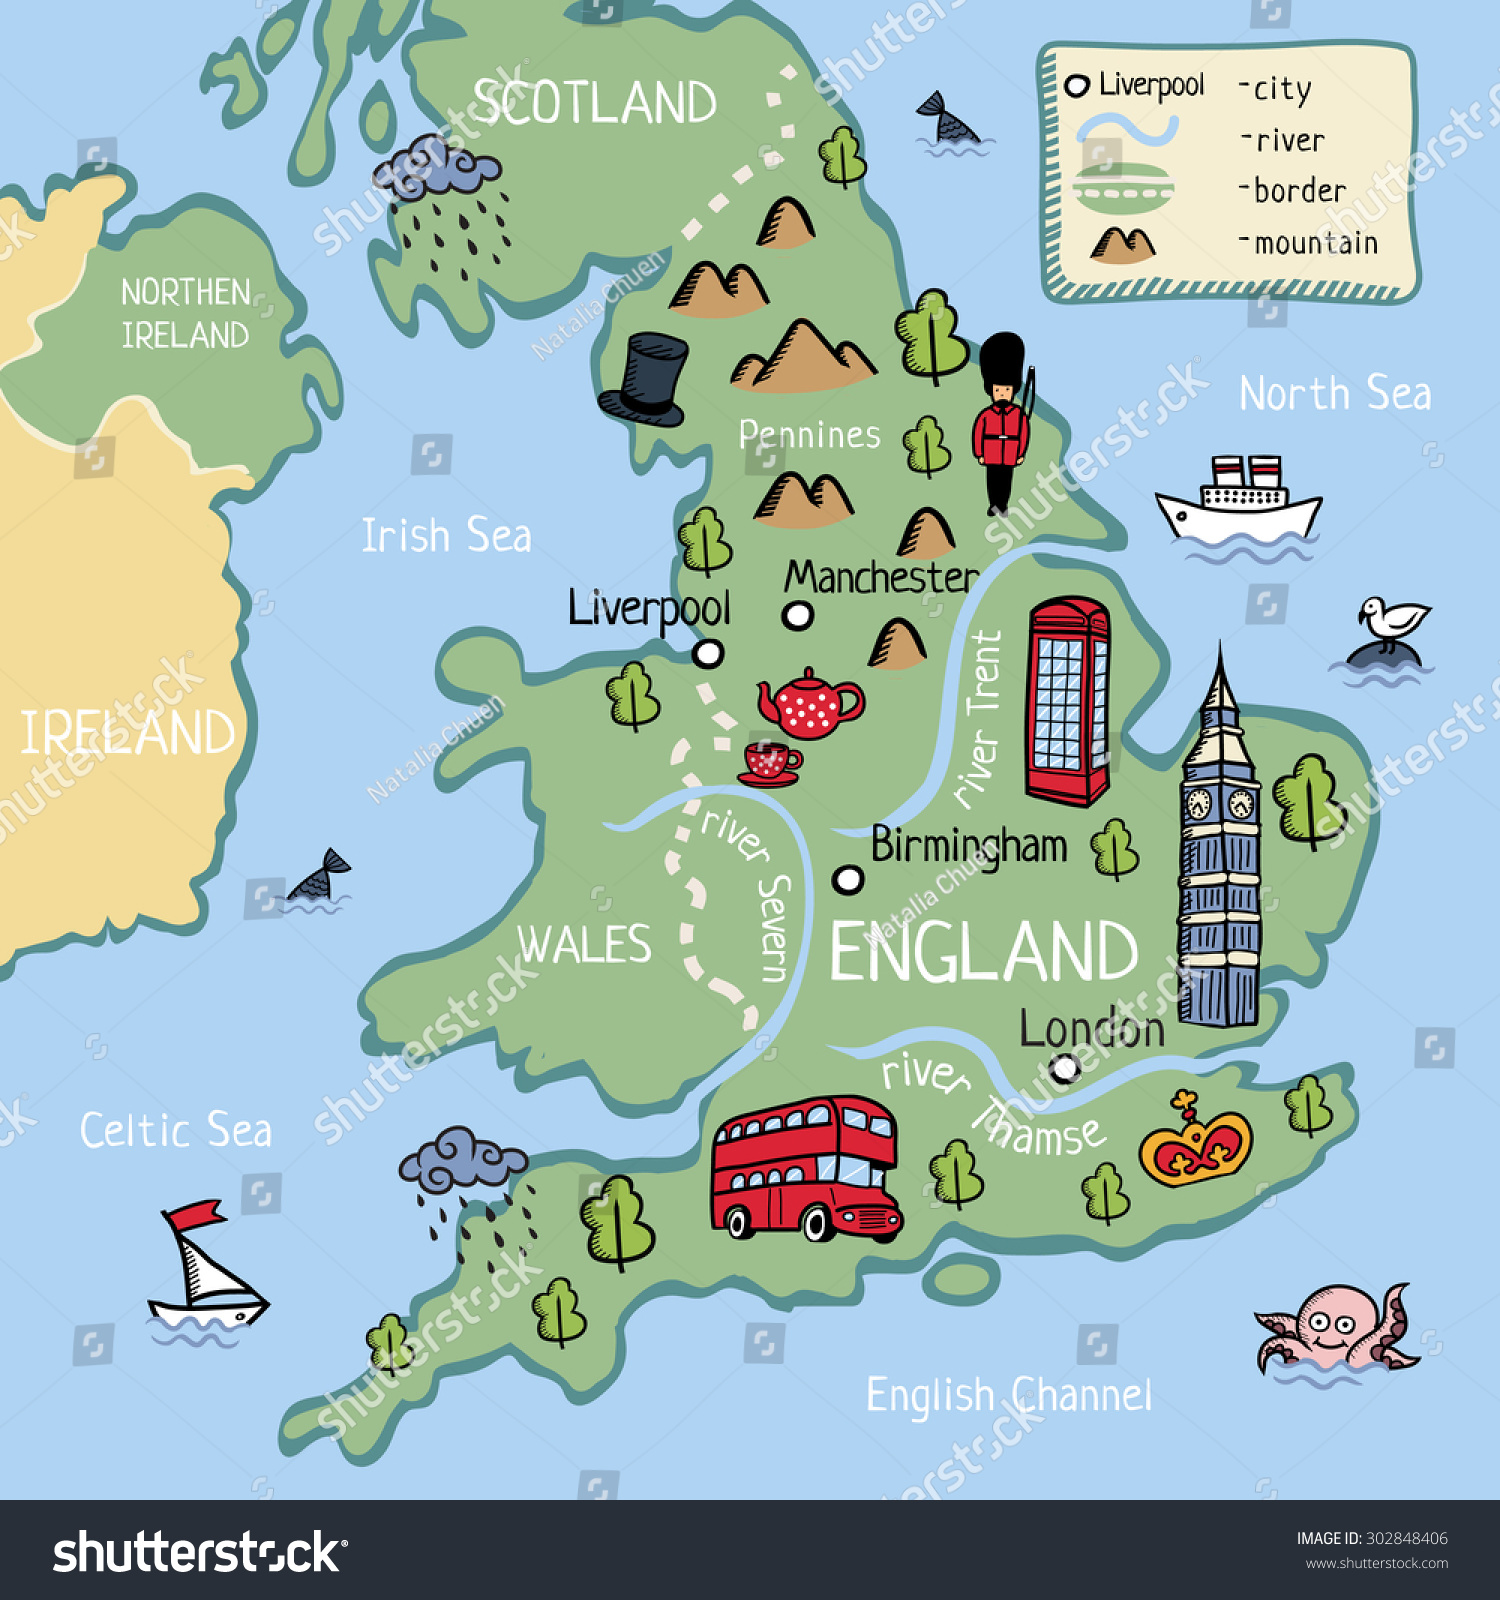 london on a map deboomfotografie choice image diagram writing sample ideas and guide owners manual audi a6 2008 owners manual audi a6 2013